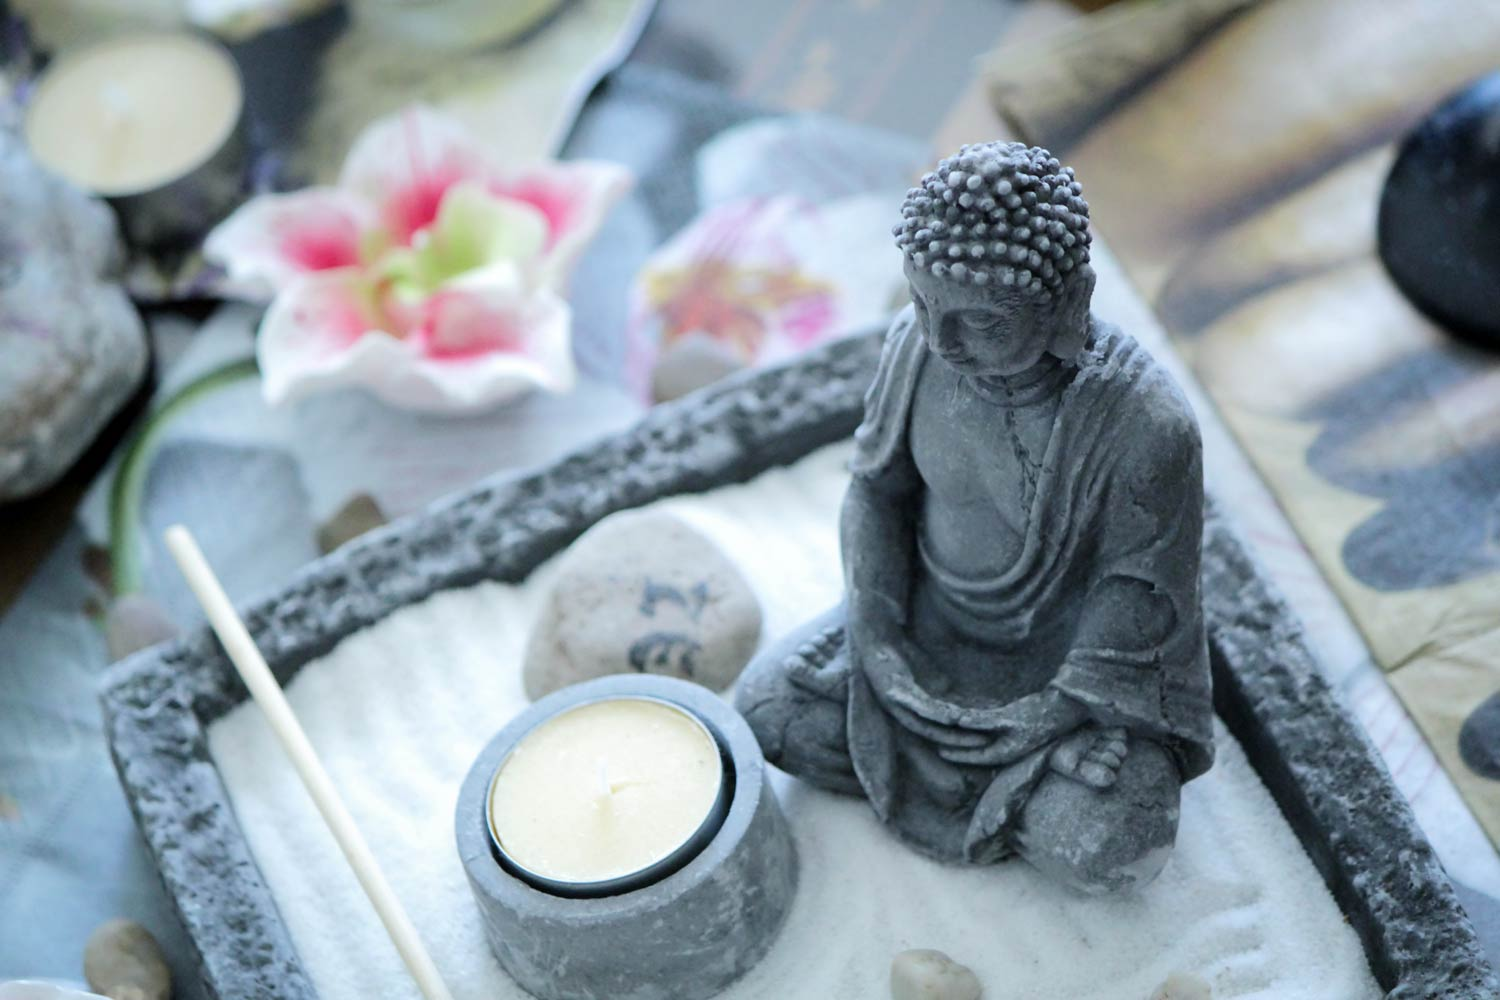 Asian Massage is represented by tranquil zen scene depicting statute in sand with candle and stone at Massage Fort Myers studio